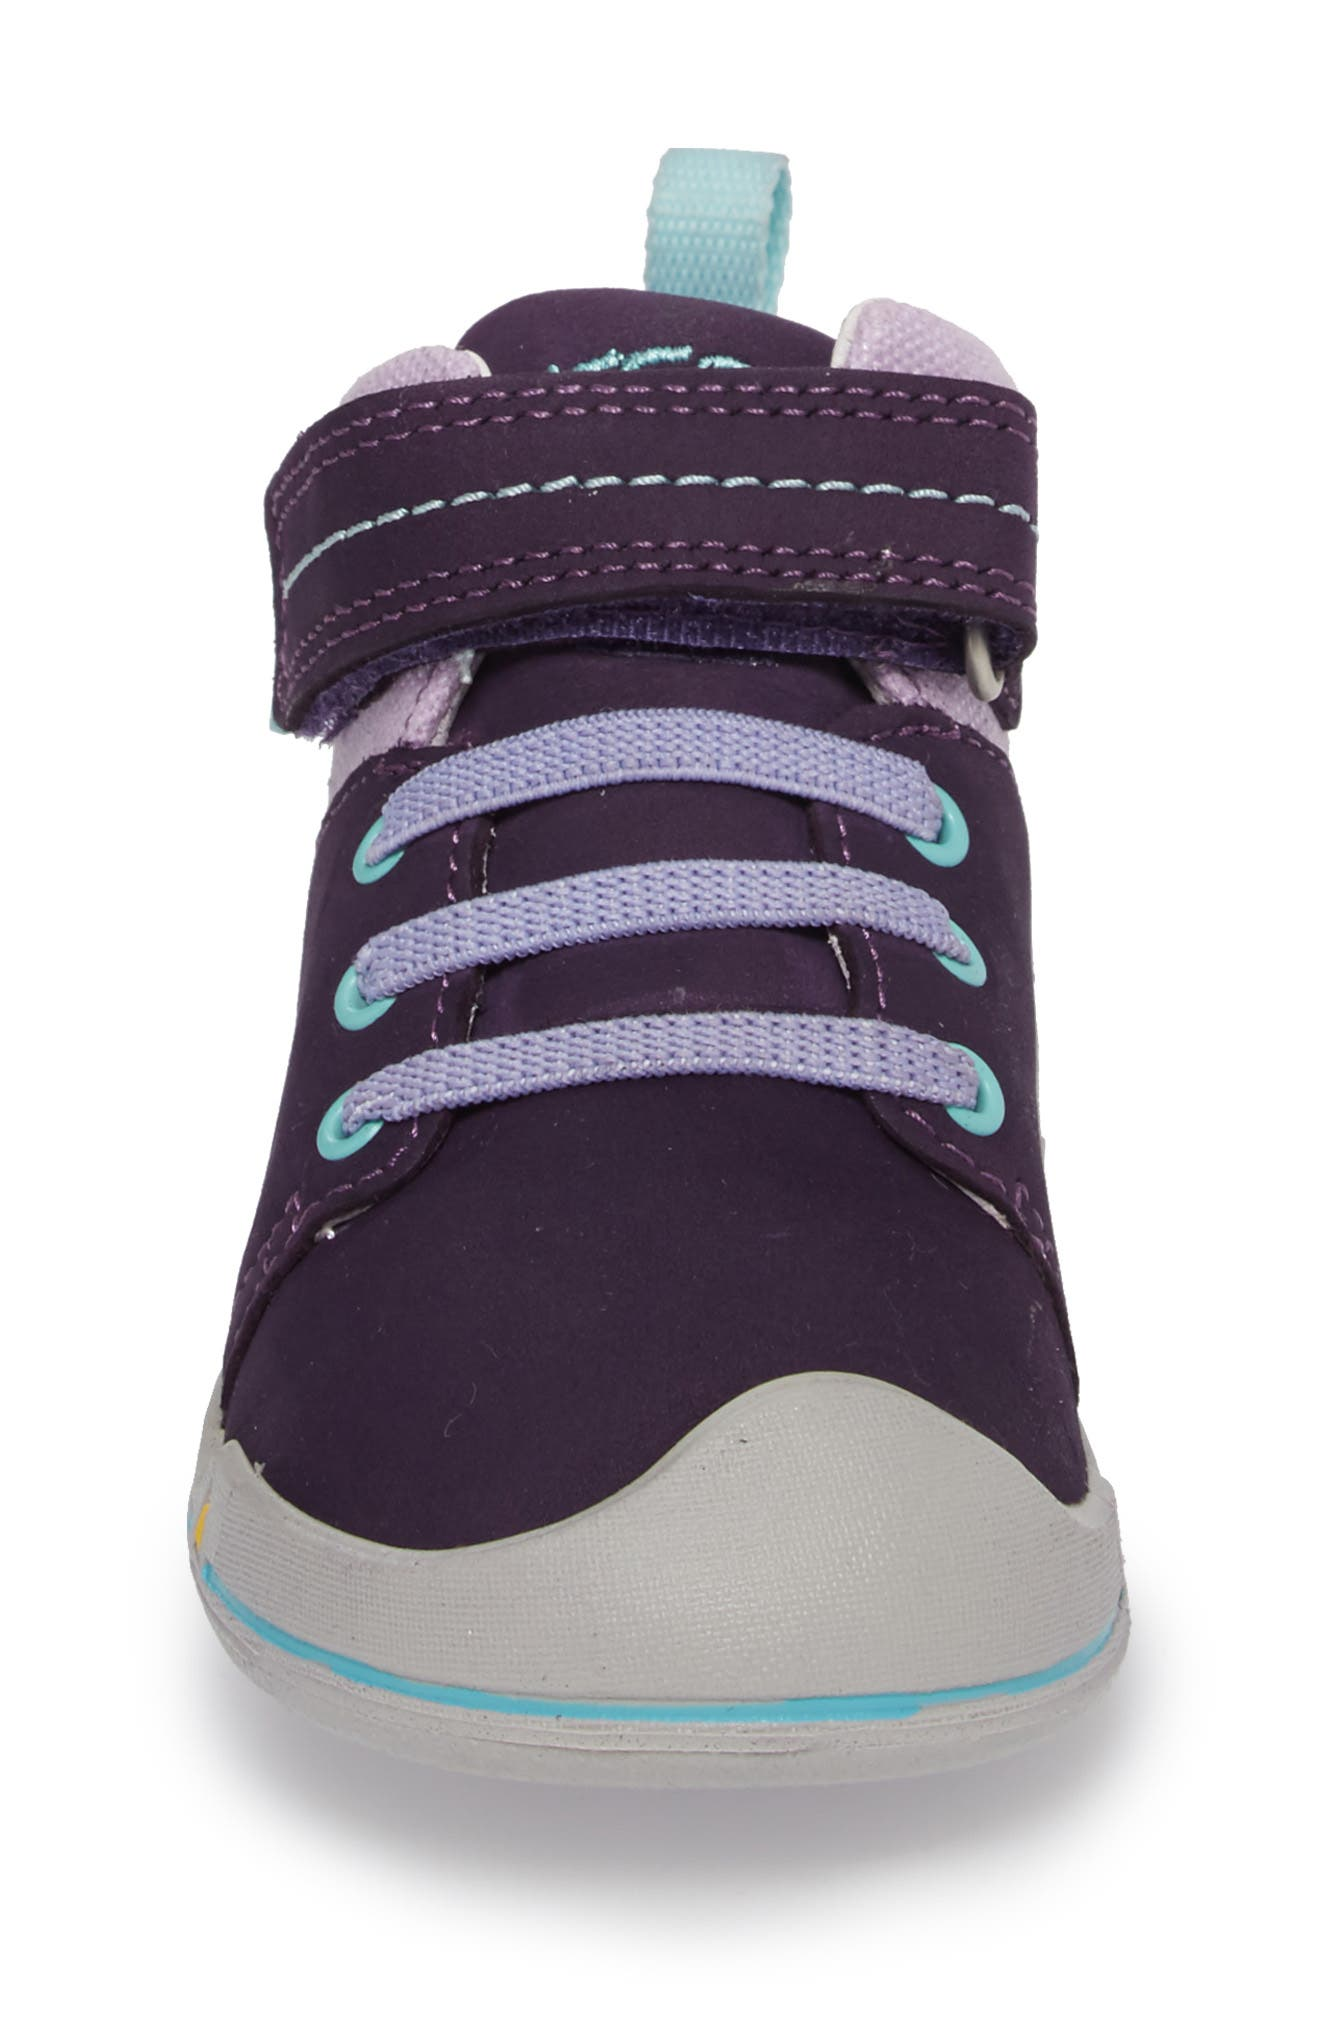 Sprout Mid Sneaker,                             Alternate thumbnail 4, color,                             Purple / Sweet Lavender